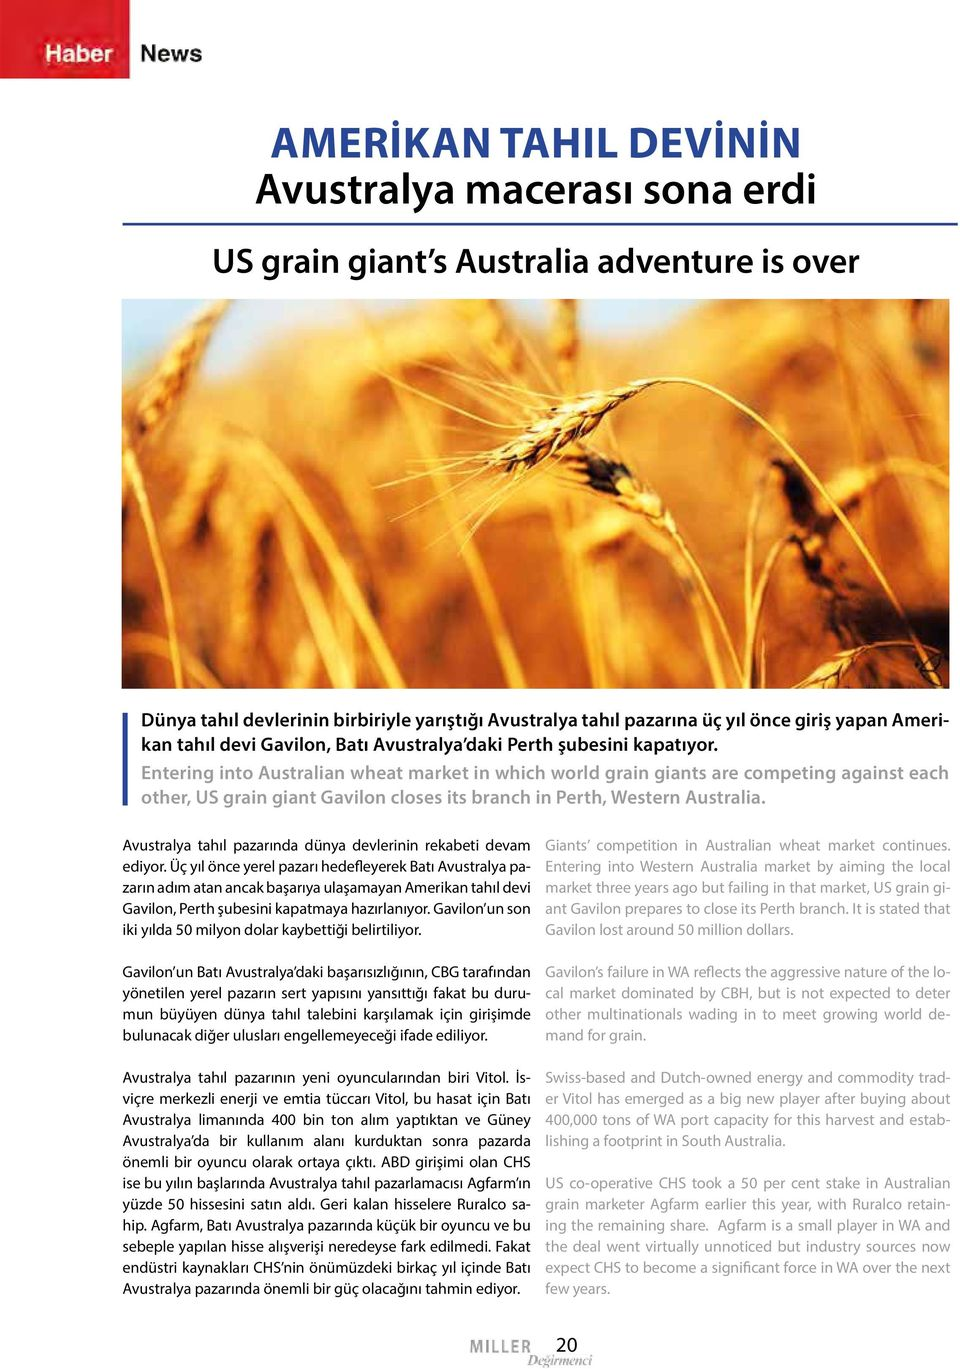 Entering into Australian wheat market in which world grain giants are competing against each other, US grain giant Gavilon closes its branch in Perth, Western Australia.